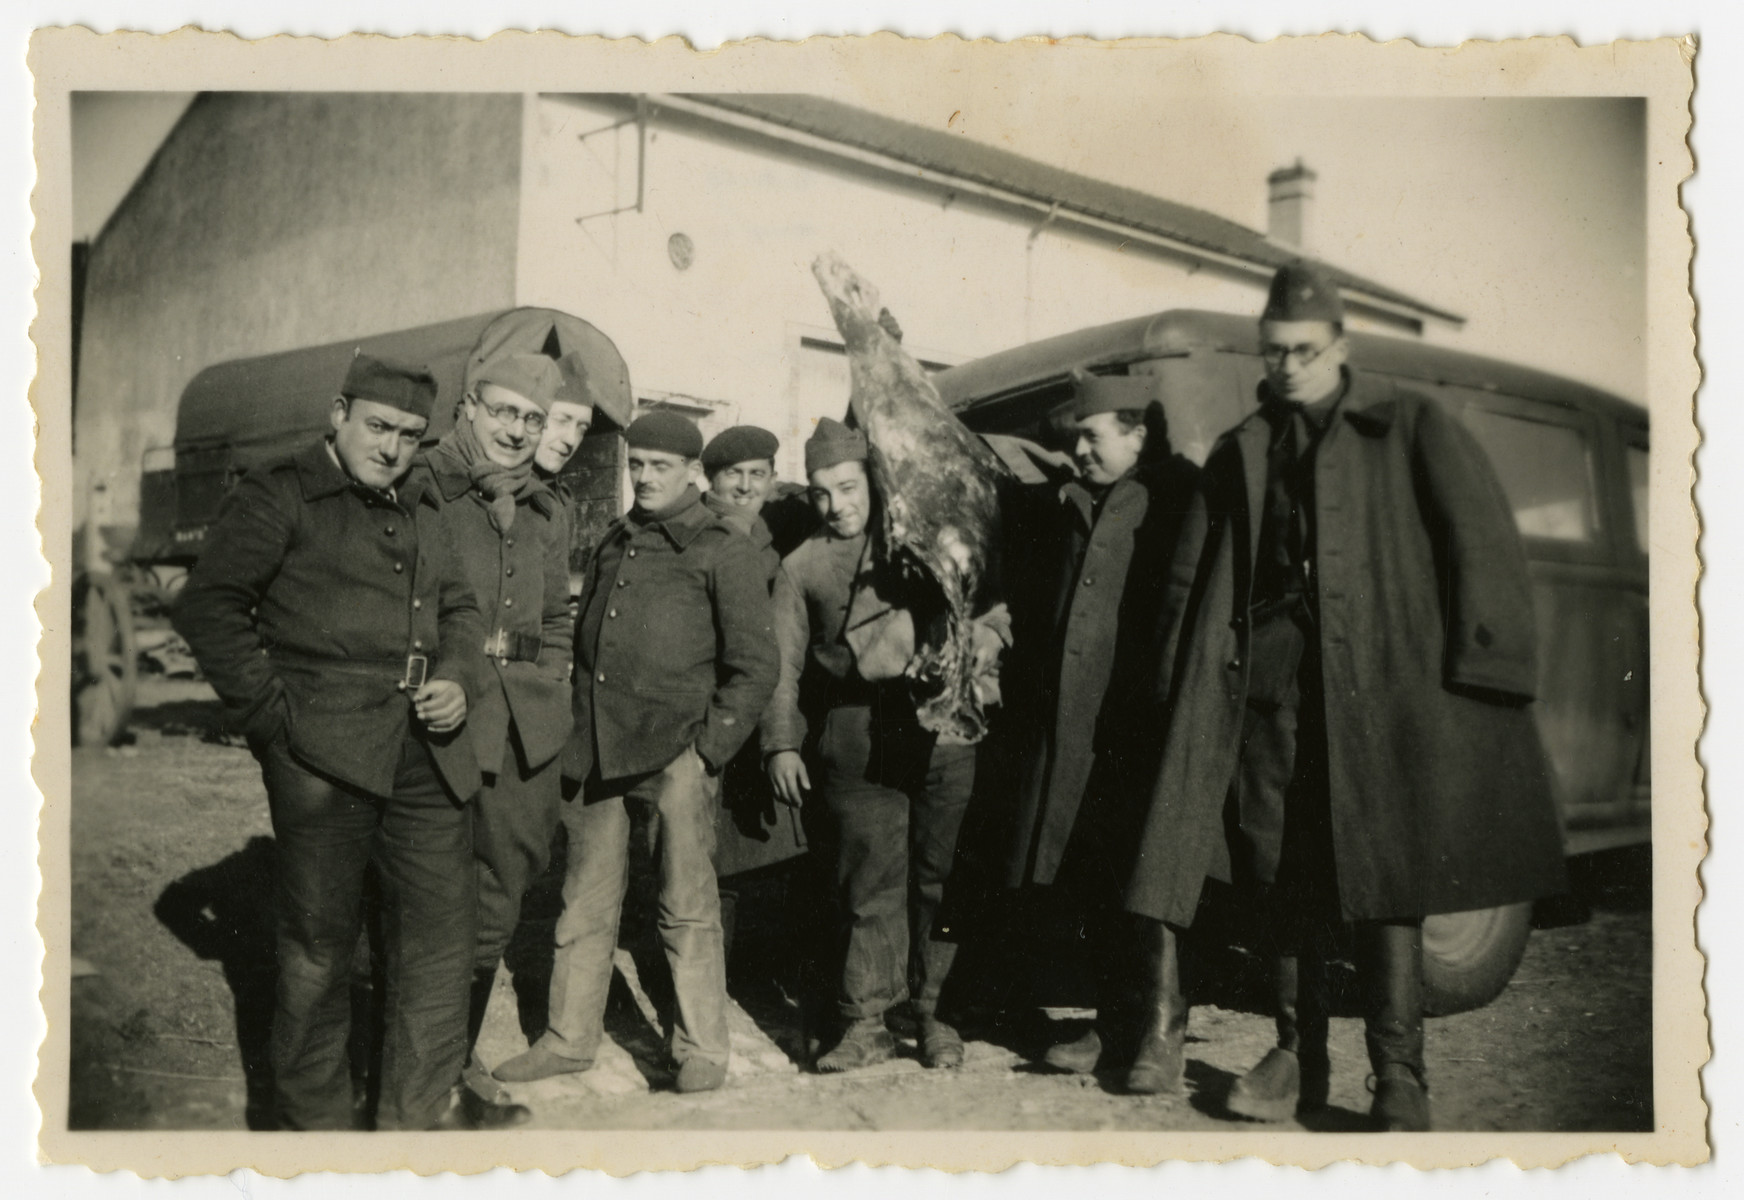 Group portrait of French soldiers.  Included are Alexander Markon, a Jewish immigrant from Lithuania.  One of the soldiers is holding an animal carcass